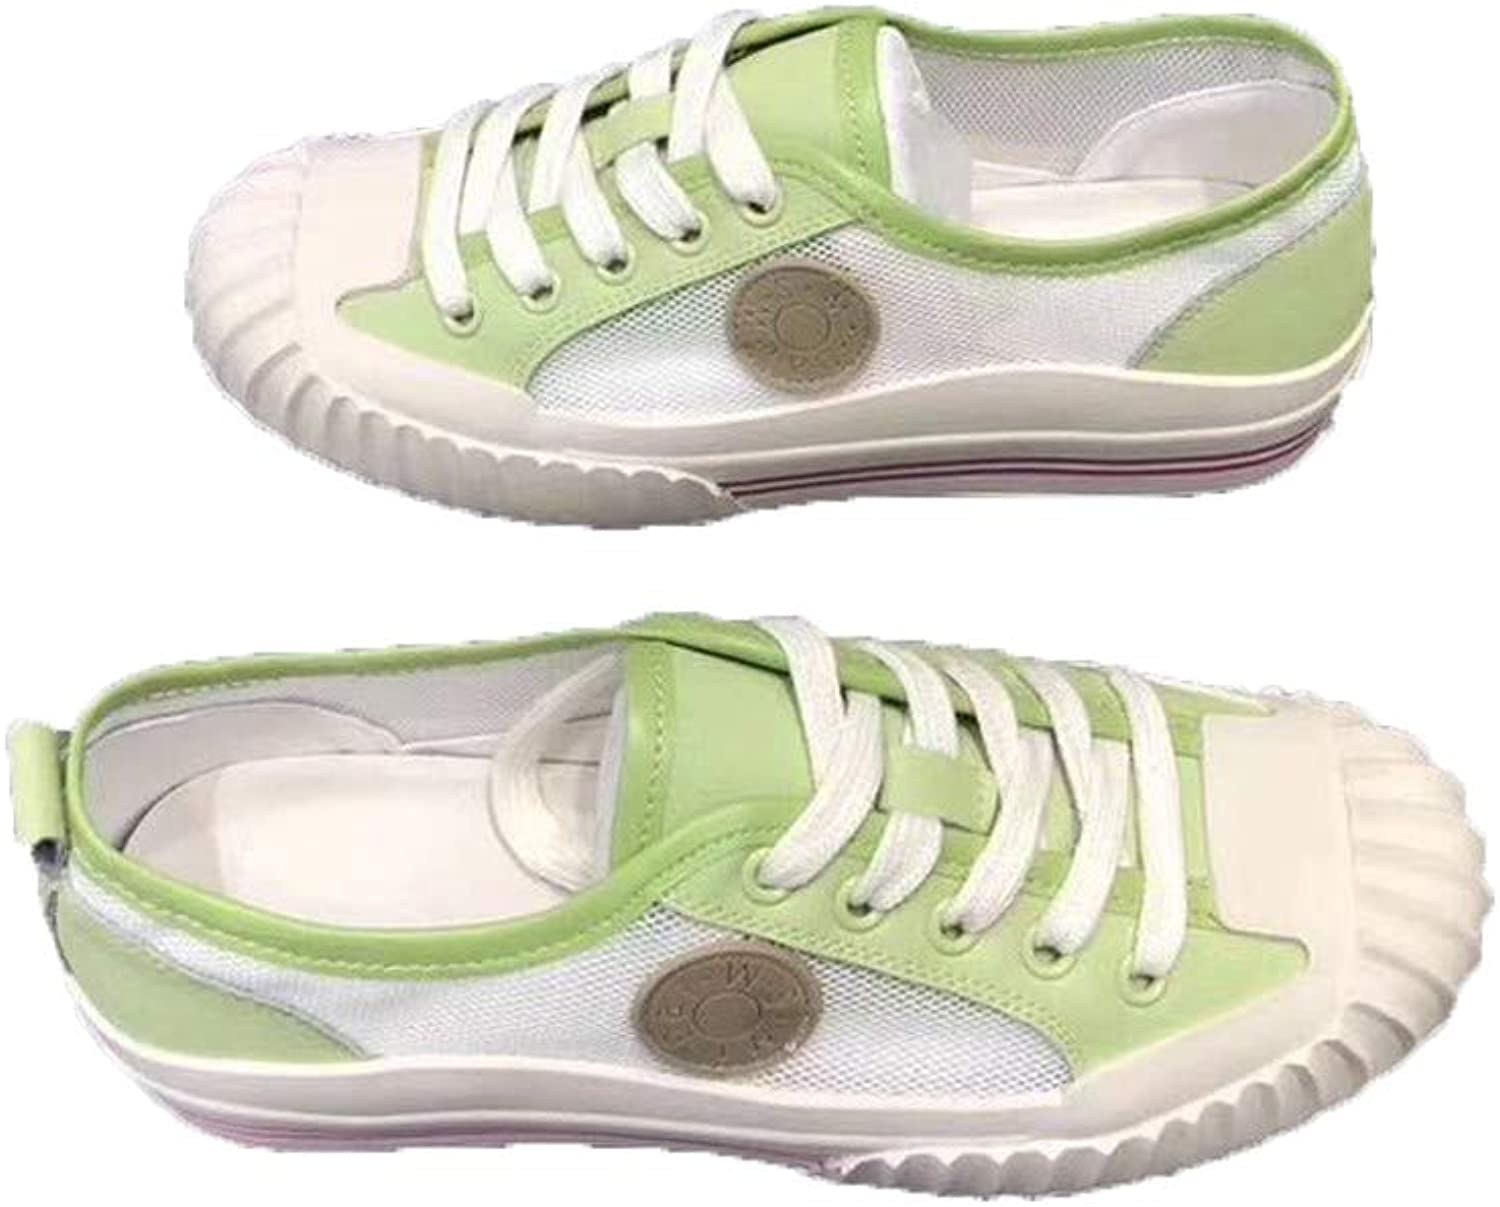 KRWTY Women's Canvas shoes Lacing Sneakers Walking shoes Lacing Party shoes